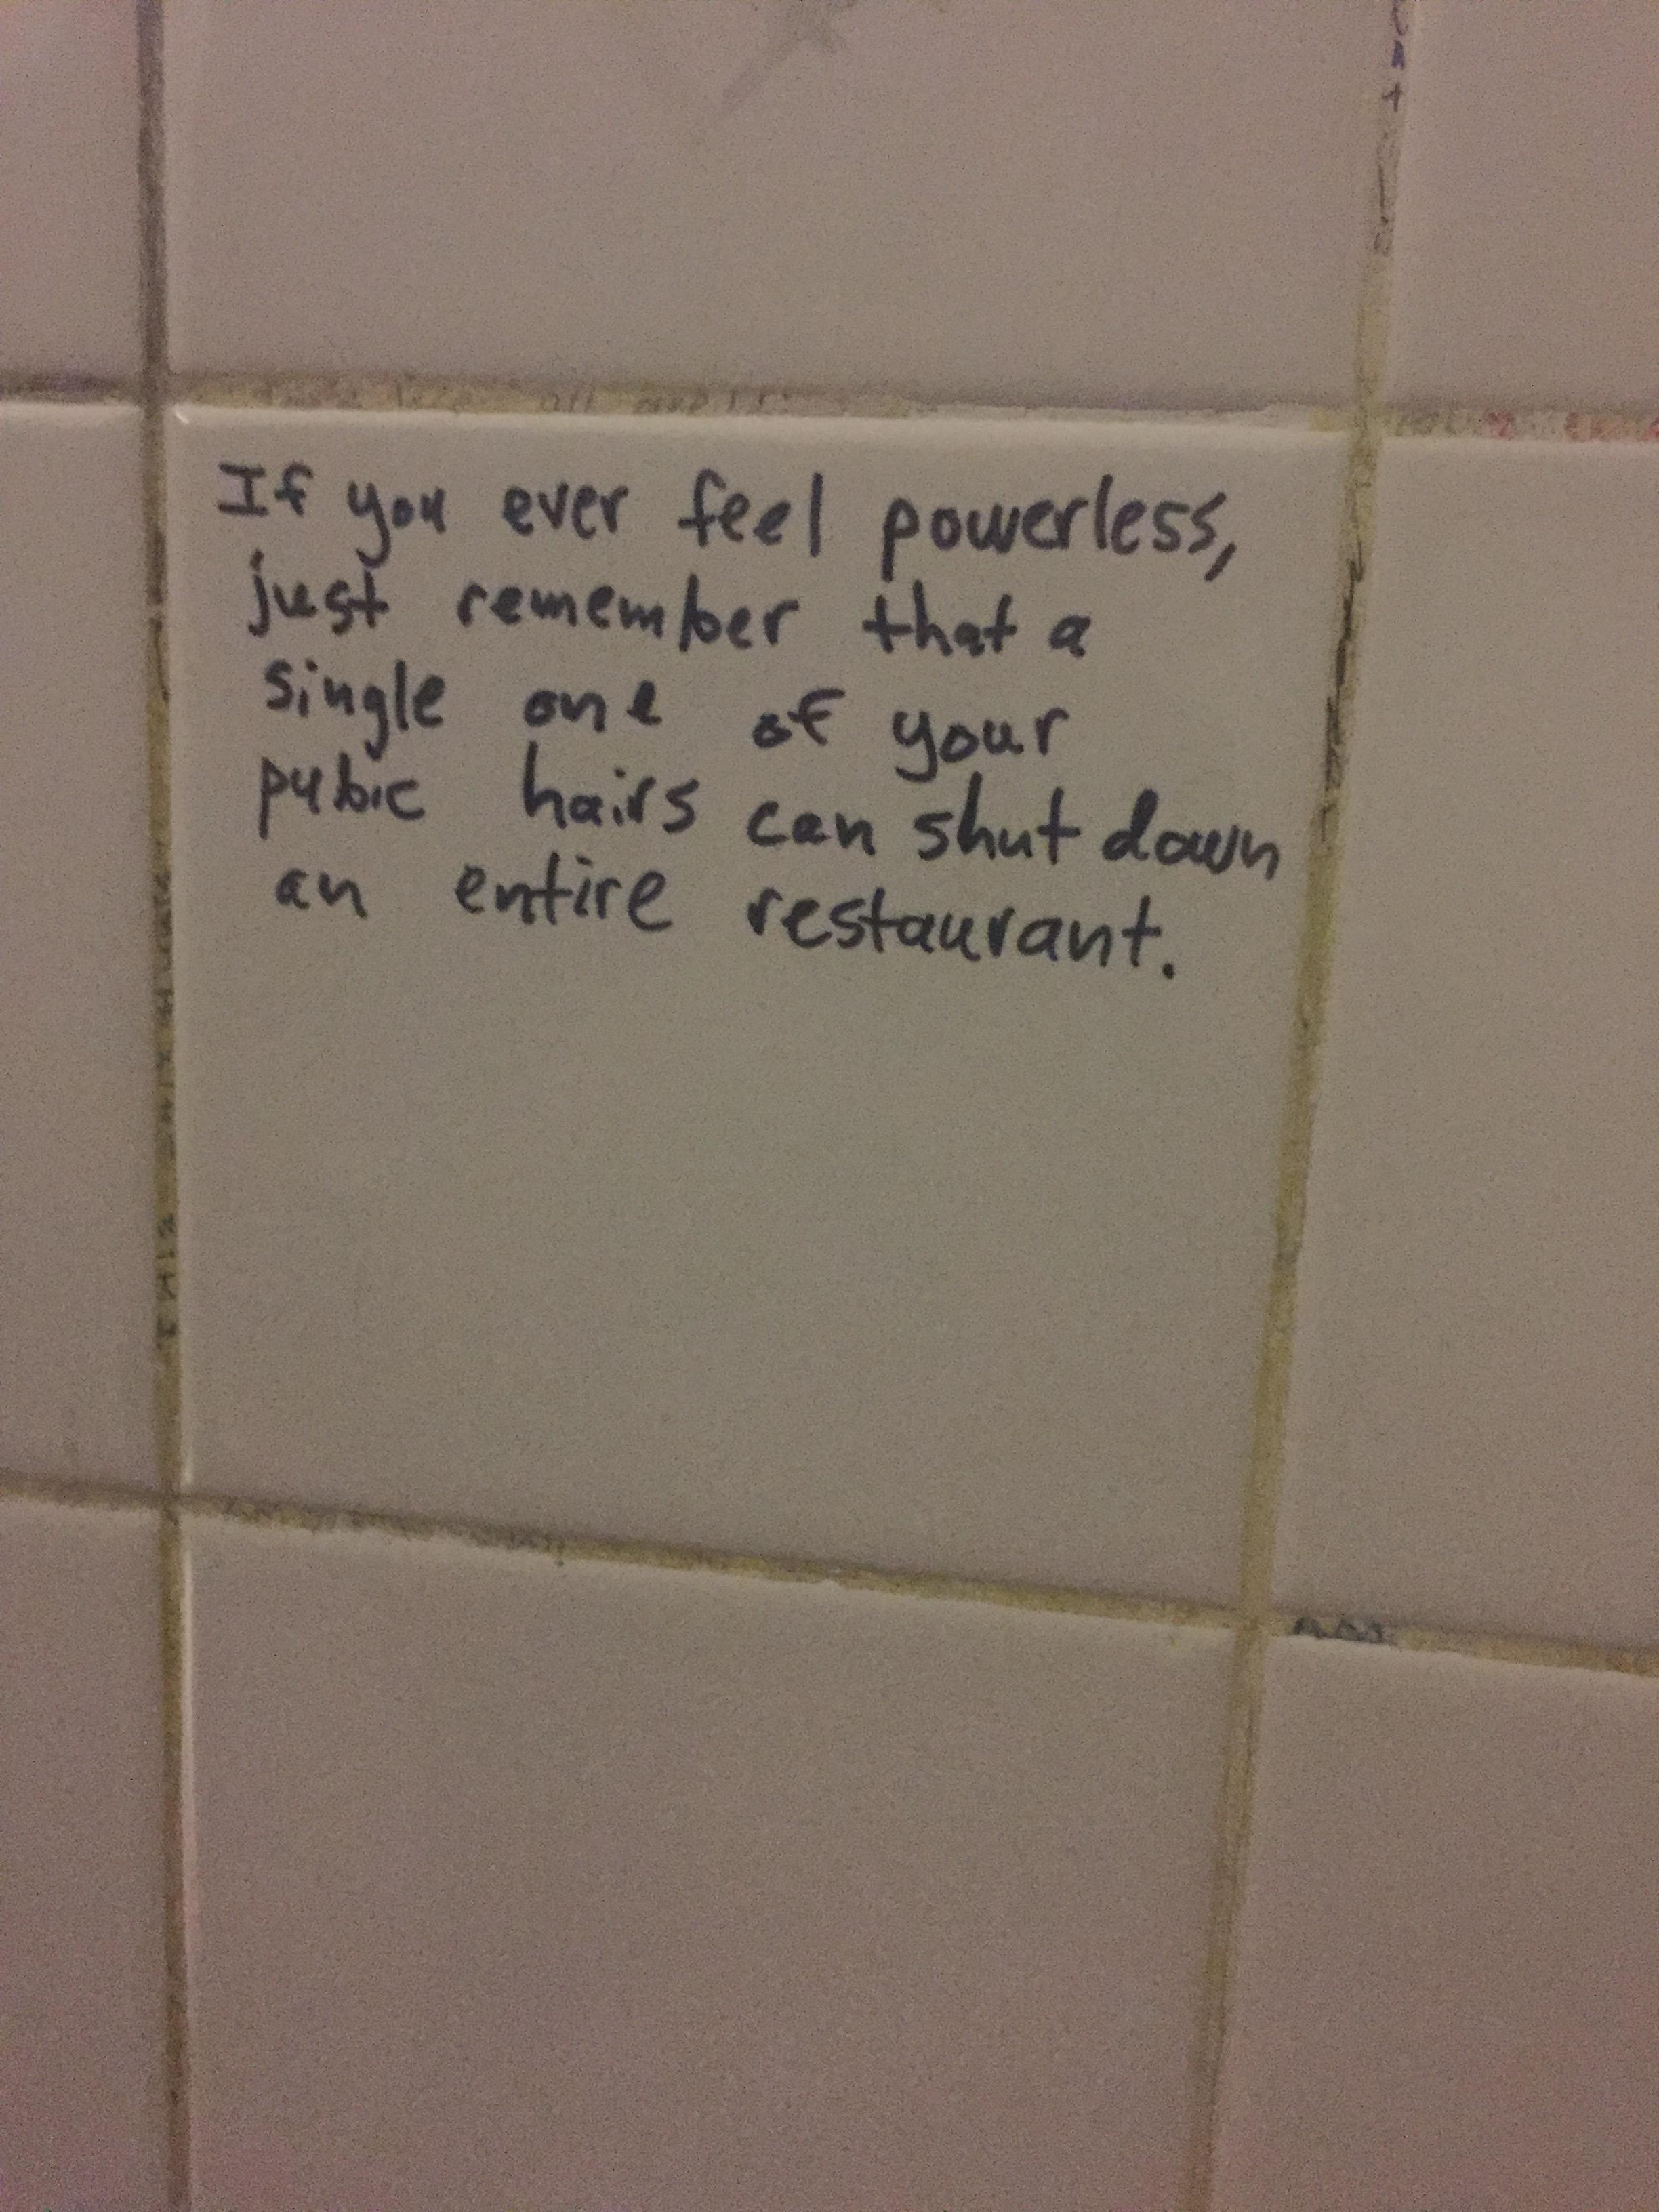 Bathroom Wall Graffiti the 20 most epic things ever written in bathroom stalls!